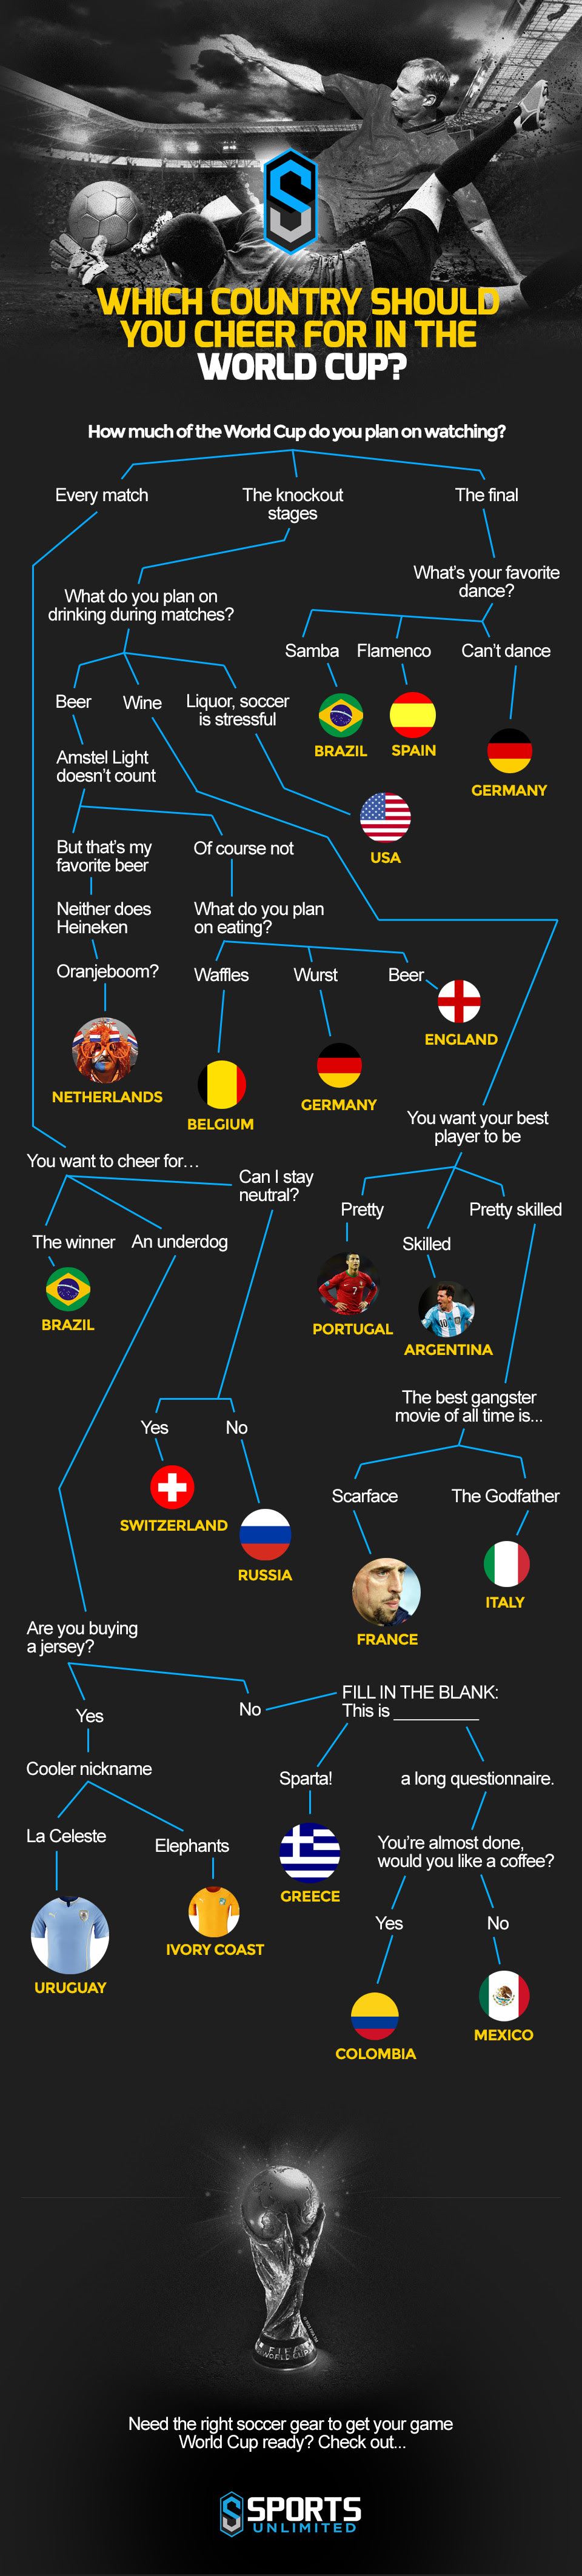 Infographic: Which Country Should You Cheer For In the World Cup #infographic